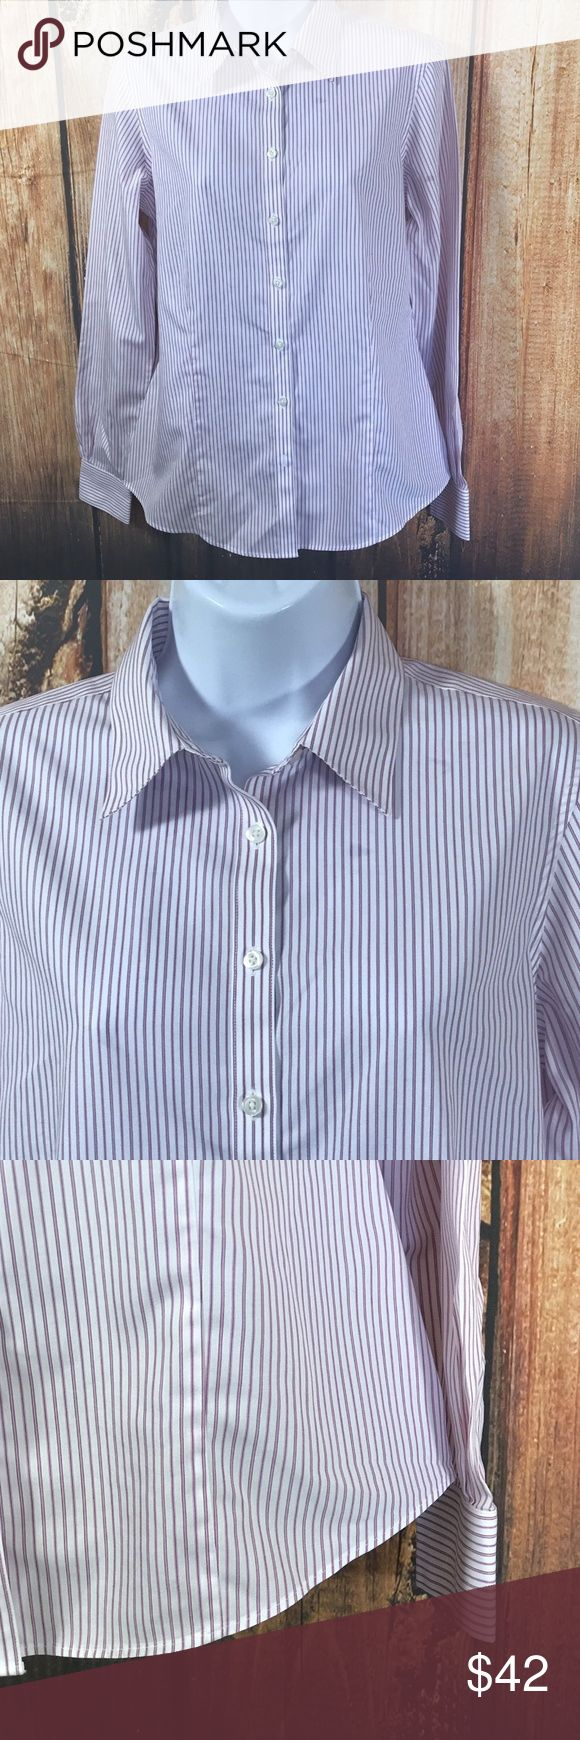 "Brooks Brothers 346 Classic Fit Non Iron Shirt Brooks Brothers 346 Classic Fit Non Iron Striped Button Front Shirt  Great shirt by Brooks Brothers  Button Front  Long Sleeves  100% Cotton  Size 6  Measures 19"" across bust  Measures 26"" long, from center back  Sleeves measure 24.5"" from shoulder seam  Gently worn, good condition Brooks Brothers Tops Button Down Shirts"